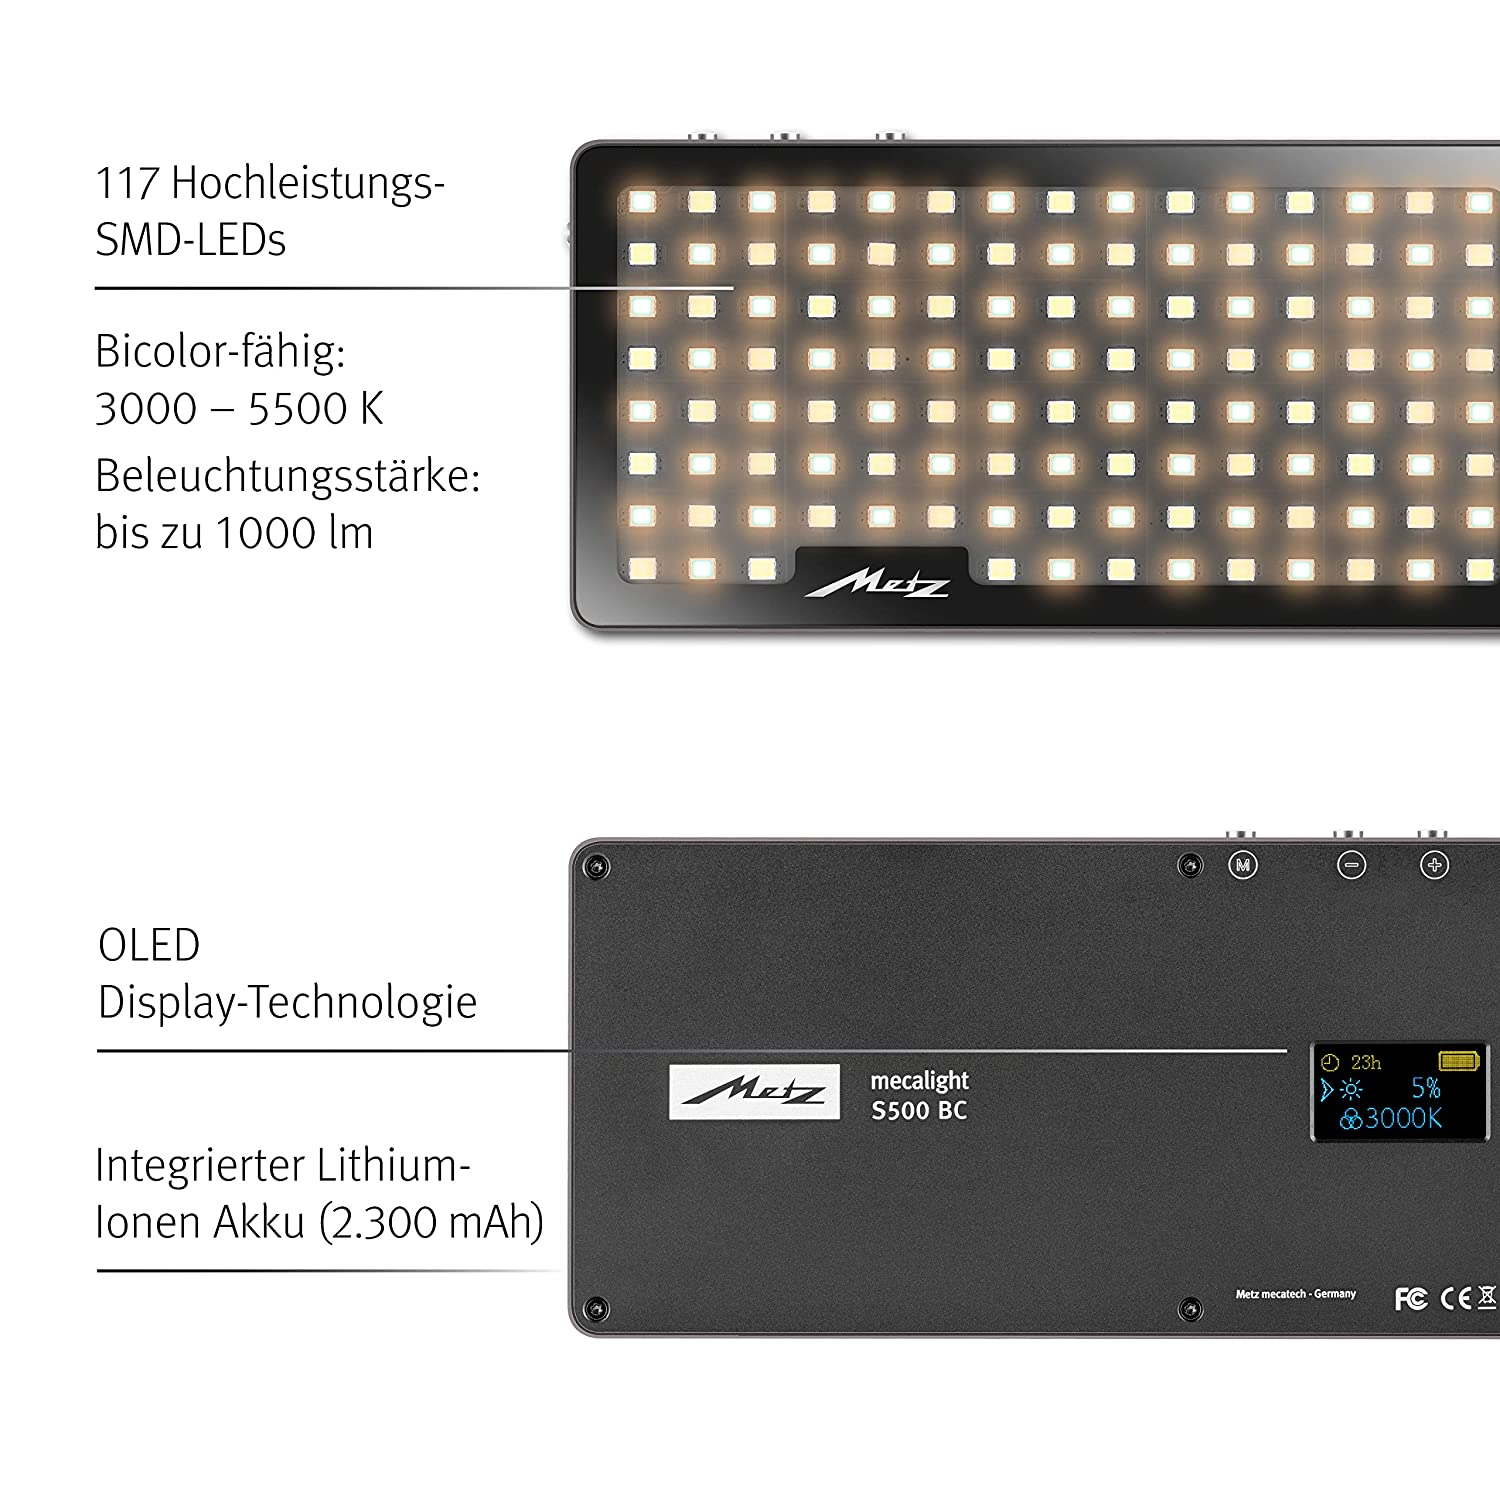 Metz mecalight S500 LED Video Light for Video and Photography in Smartphone Format/SMD High Performance with up to 1000 Lumen/Bi-Colour Camera & Photo 3000 to 5500 K